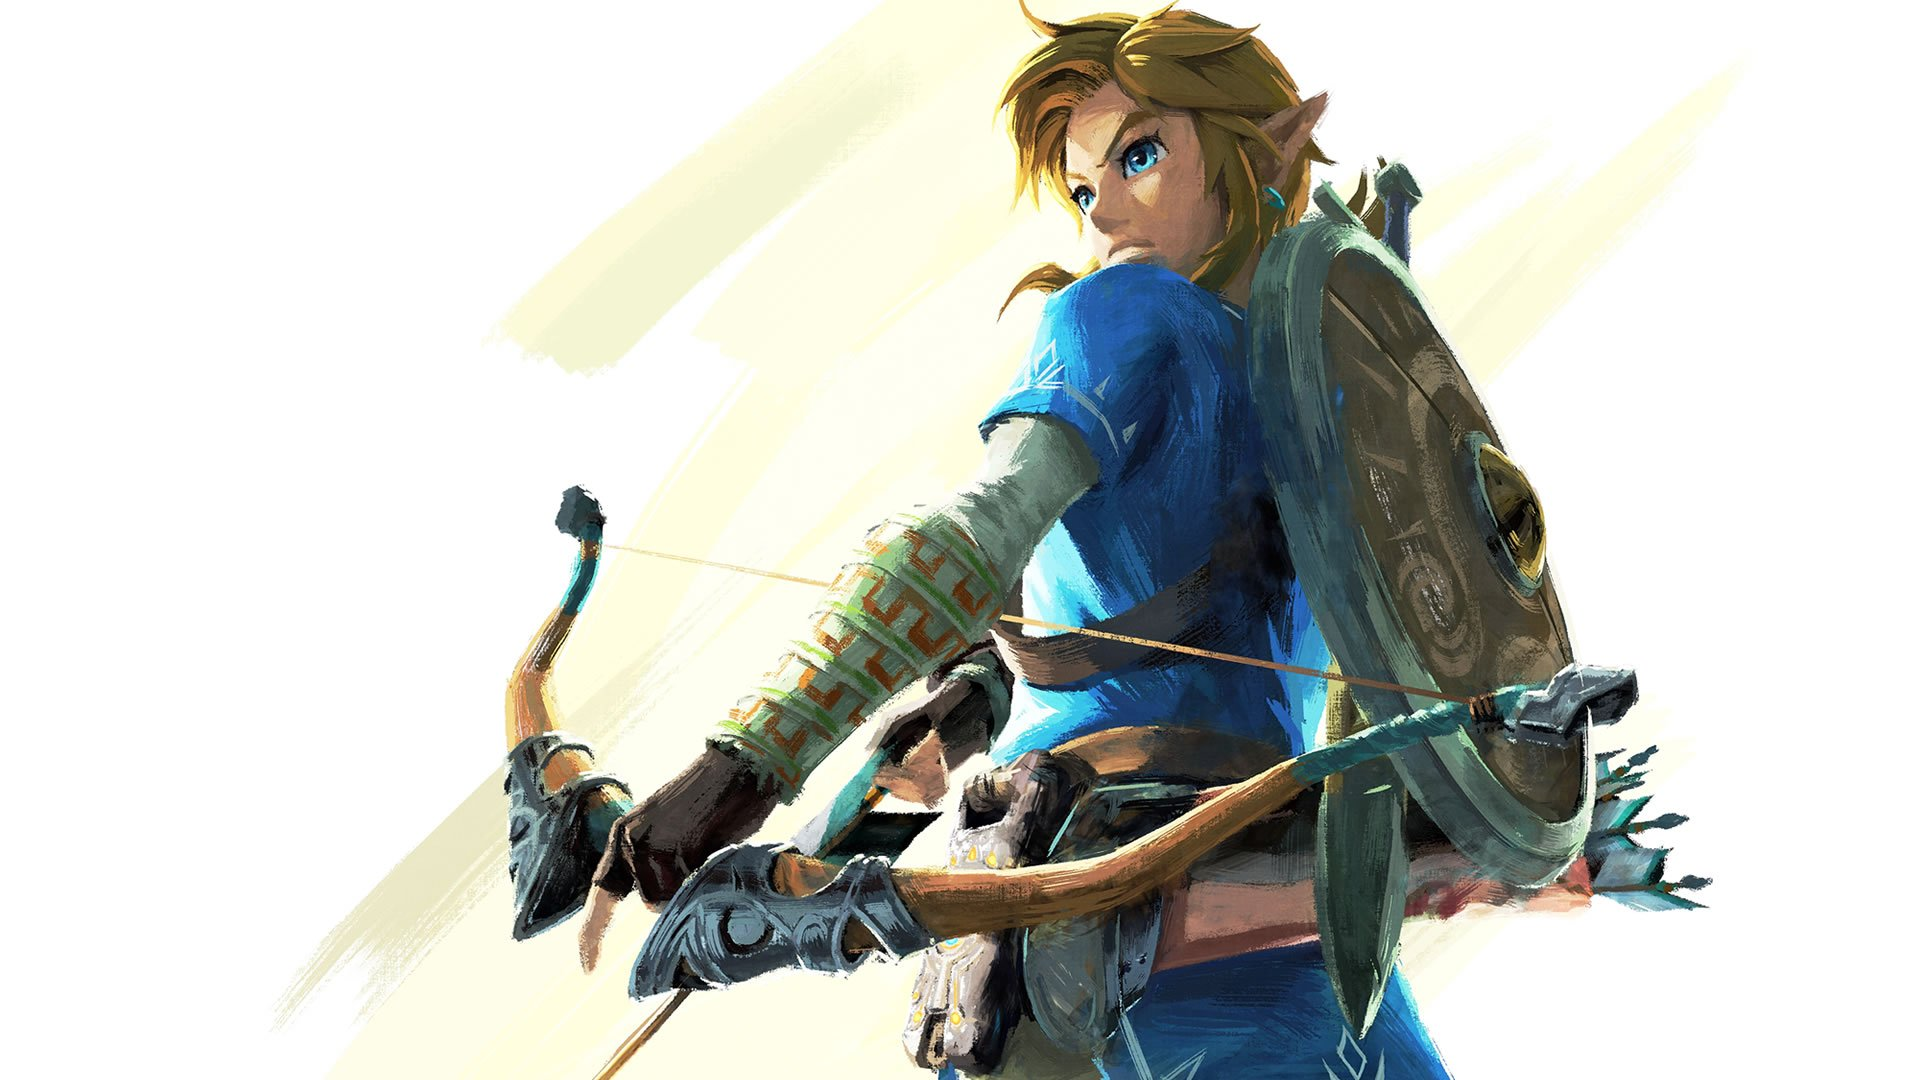 Modojo | Could Breath Of The Wild Link Star In Super Smash Bros On Switch?